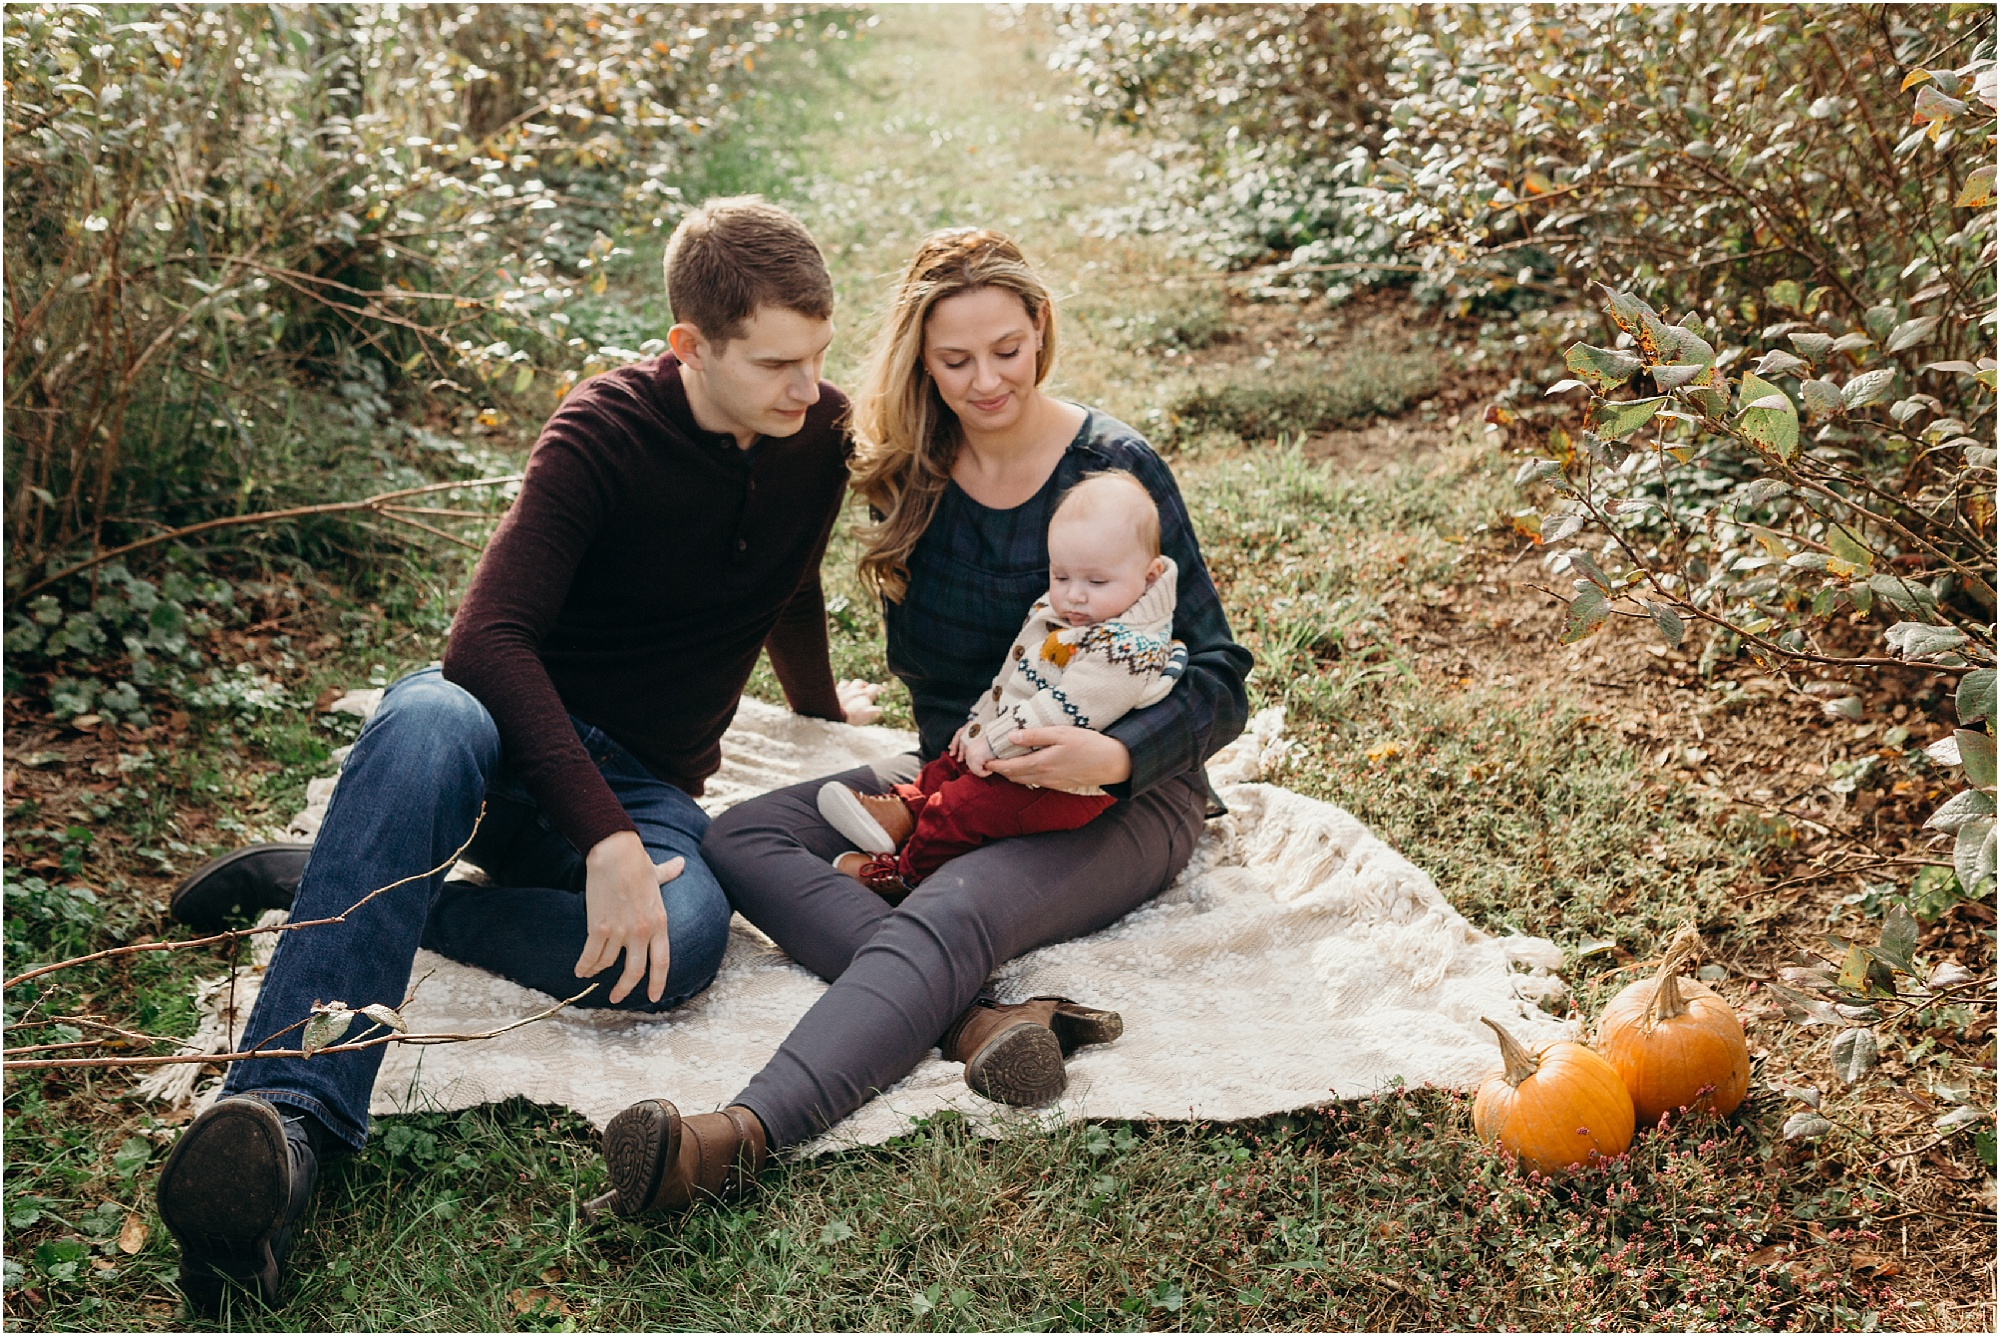 Melissa_Time_Fall_2017_Joe_Mac_Photography_Family_0005.jpg